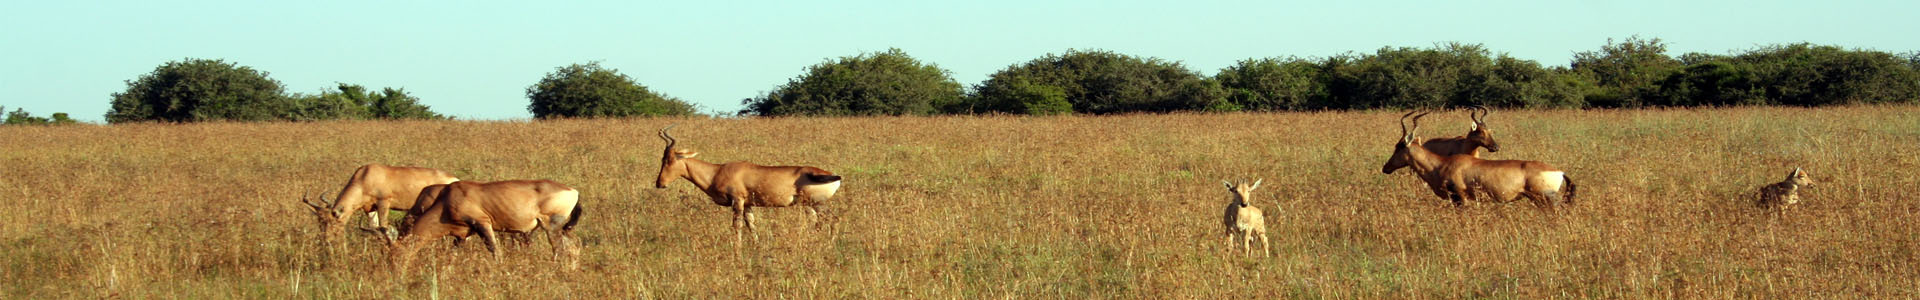 Amakhala Game Reserve Eastern Cape Conservation Wildlife